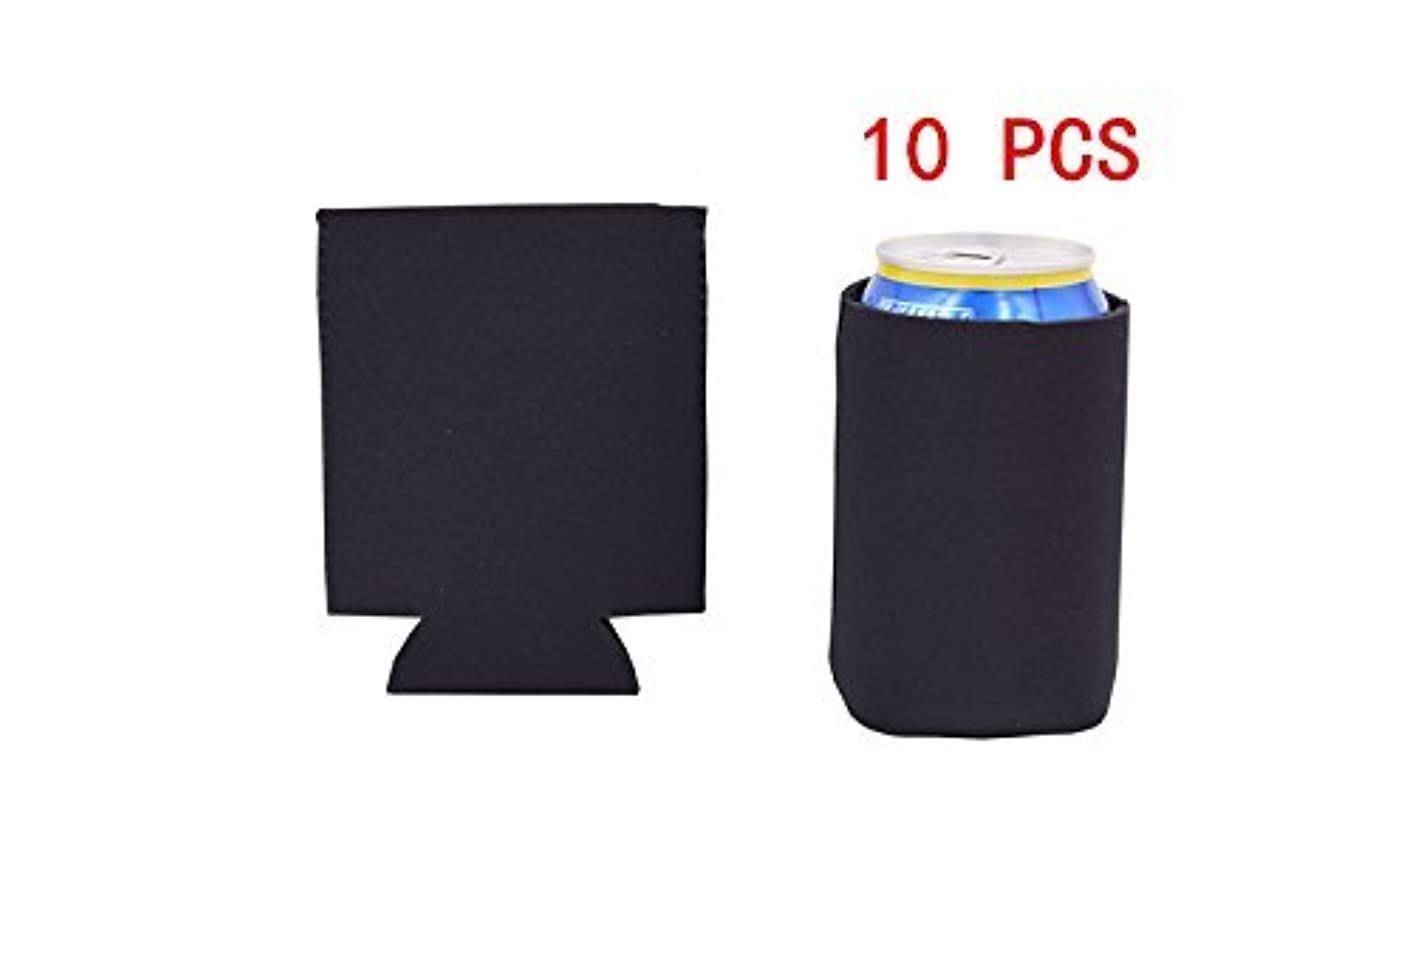 Lucky Life 12OZ /330ML Collapsible Neoprene Can Holder Cooler Sleeve Coolie for Cola/Beer/Soda- 10 pack (BLACK)